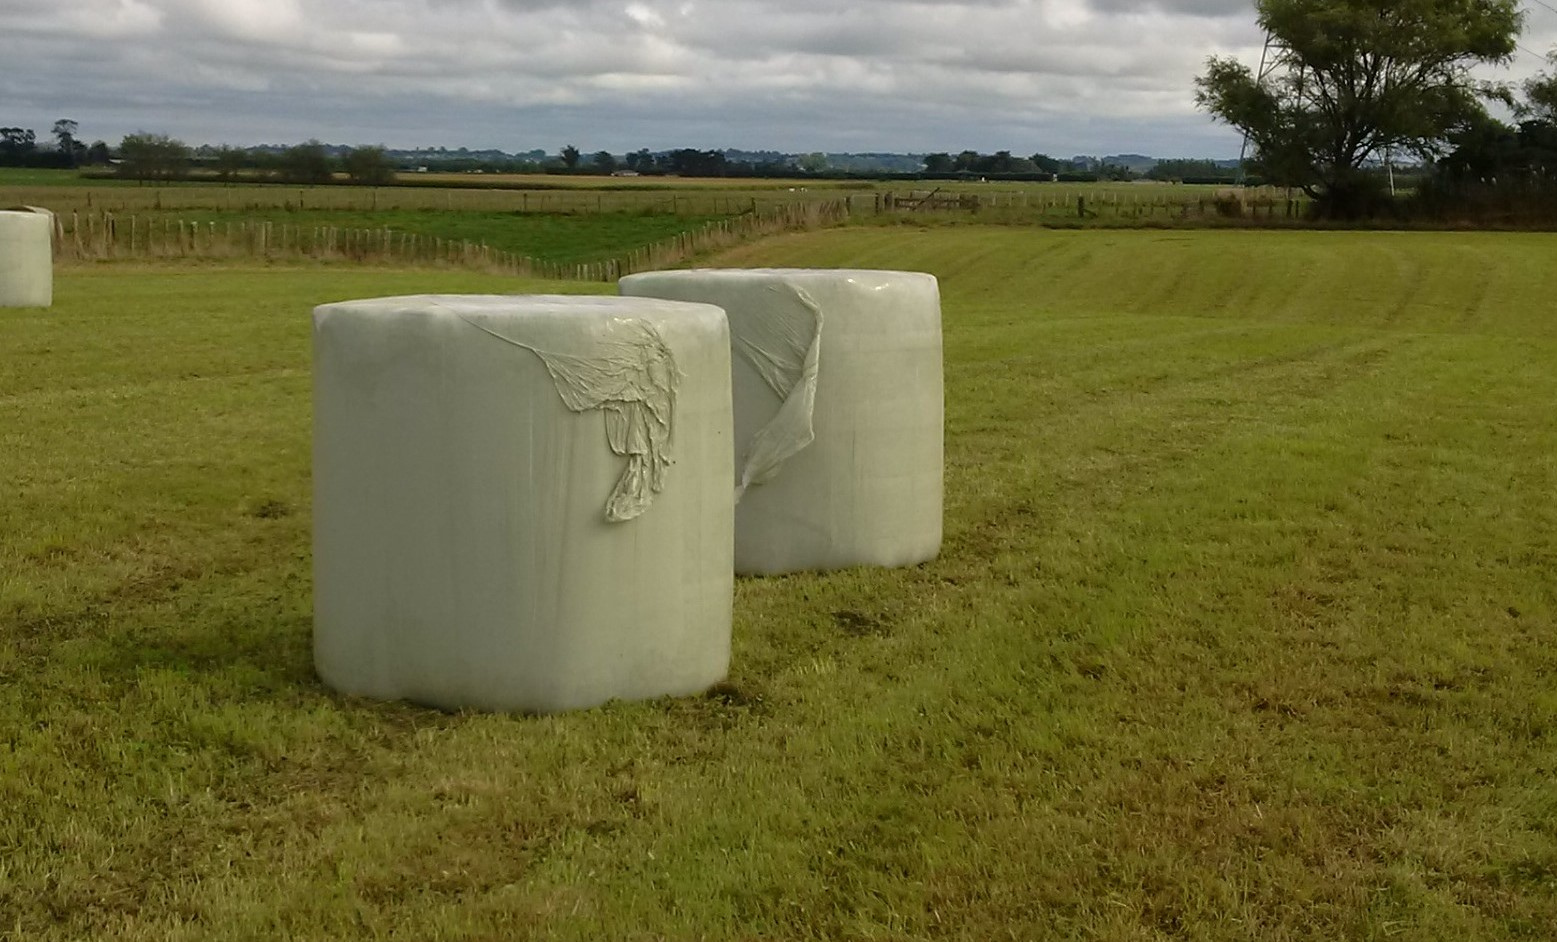 SilaCORD Bale Wrap On Bales